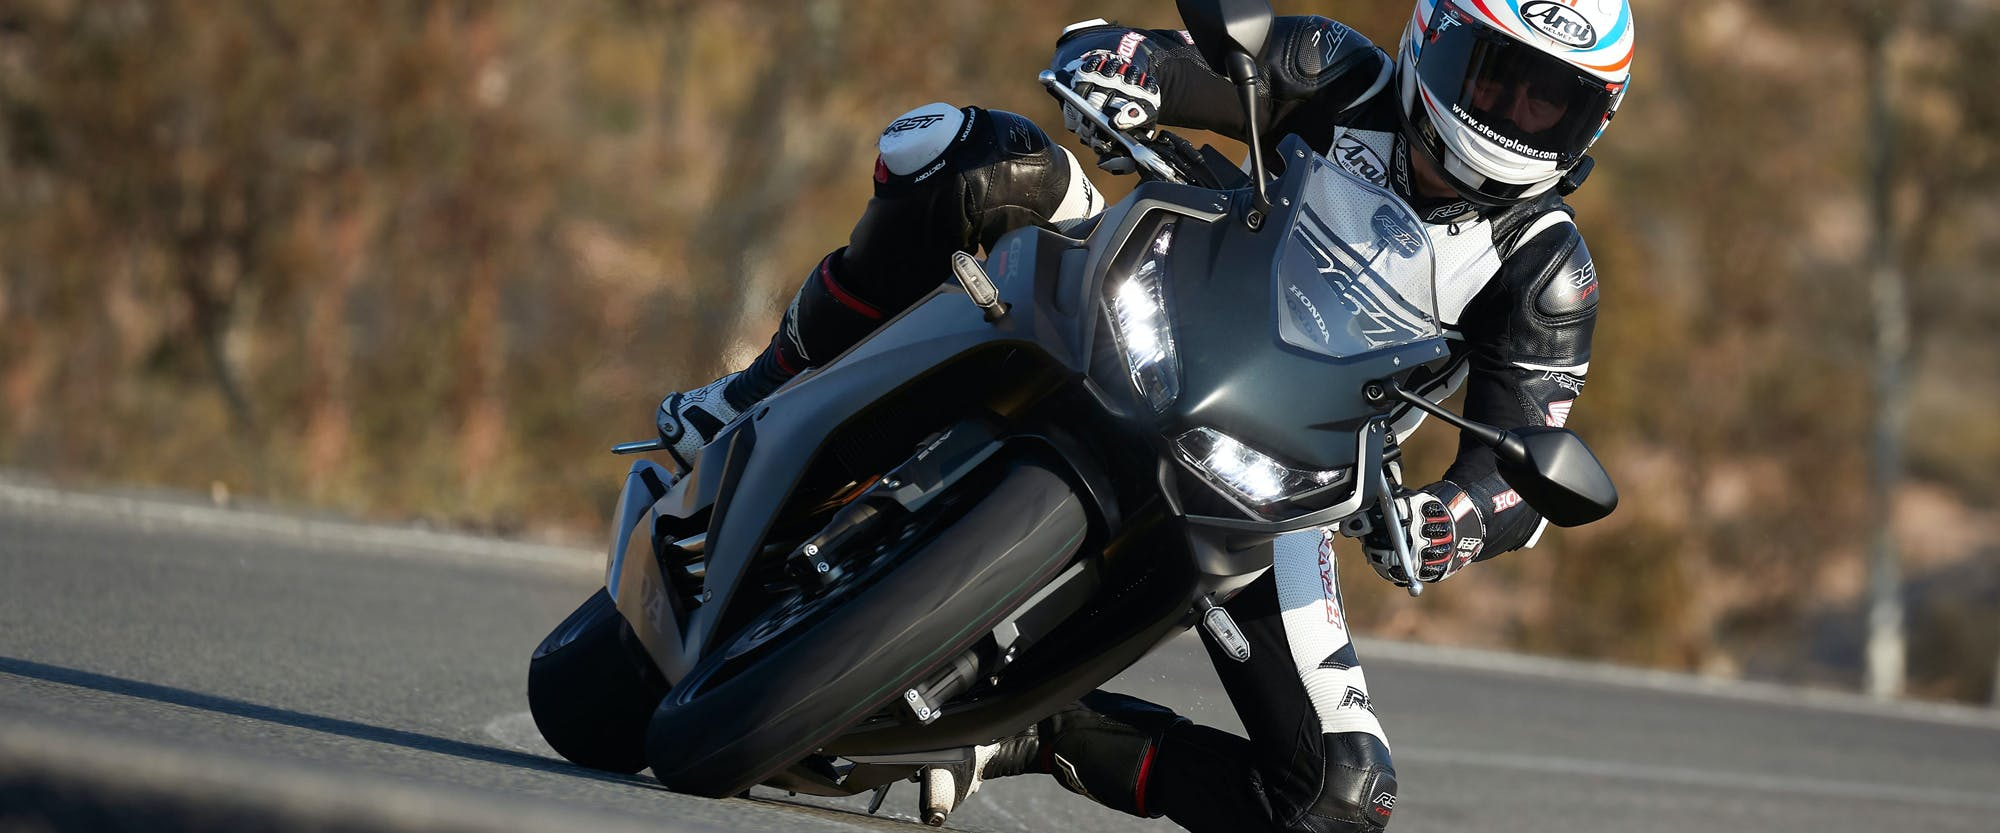 Honda CBR650R in pearl smoke grey colour, being ridden on the road